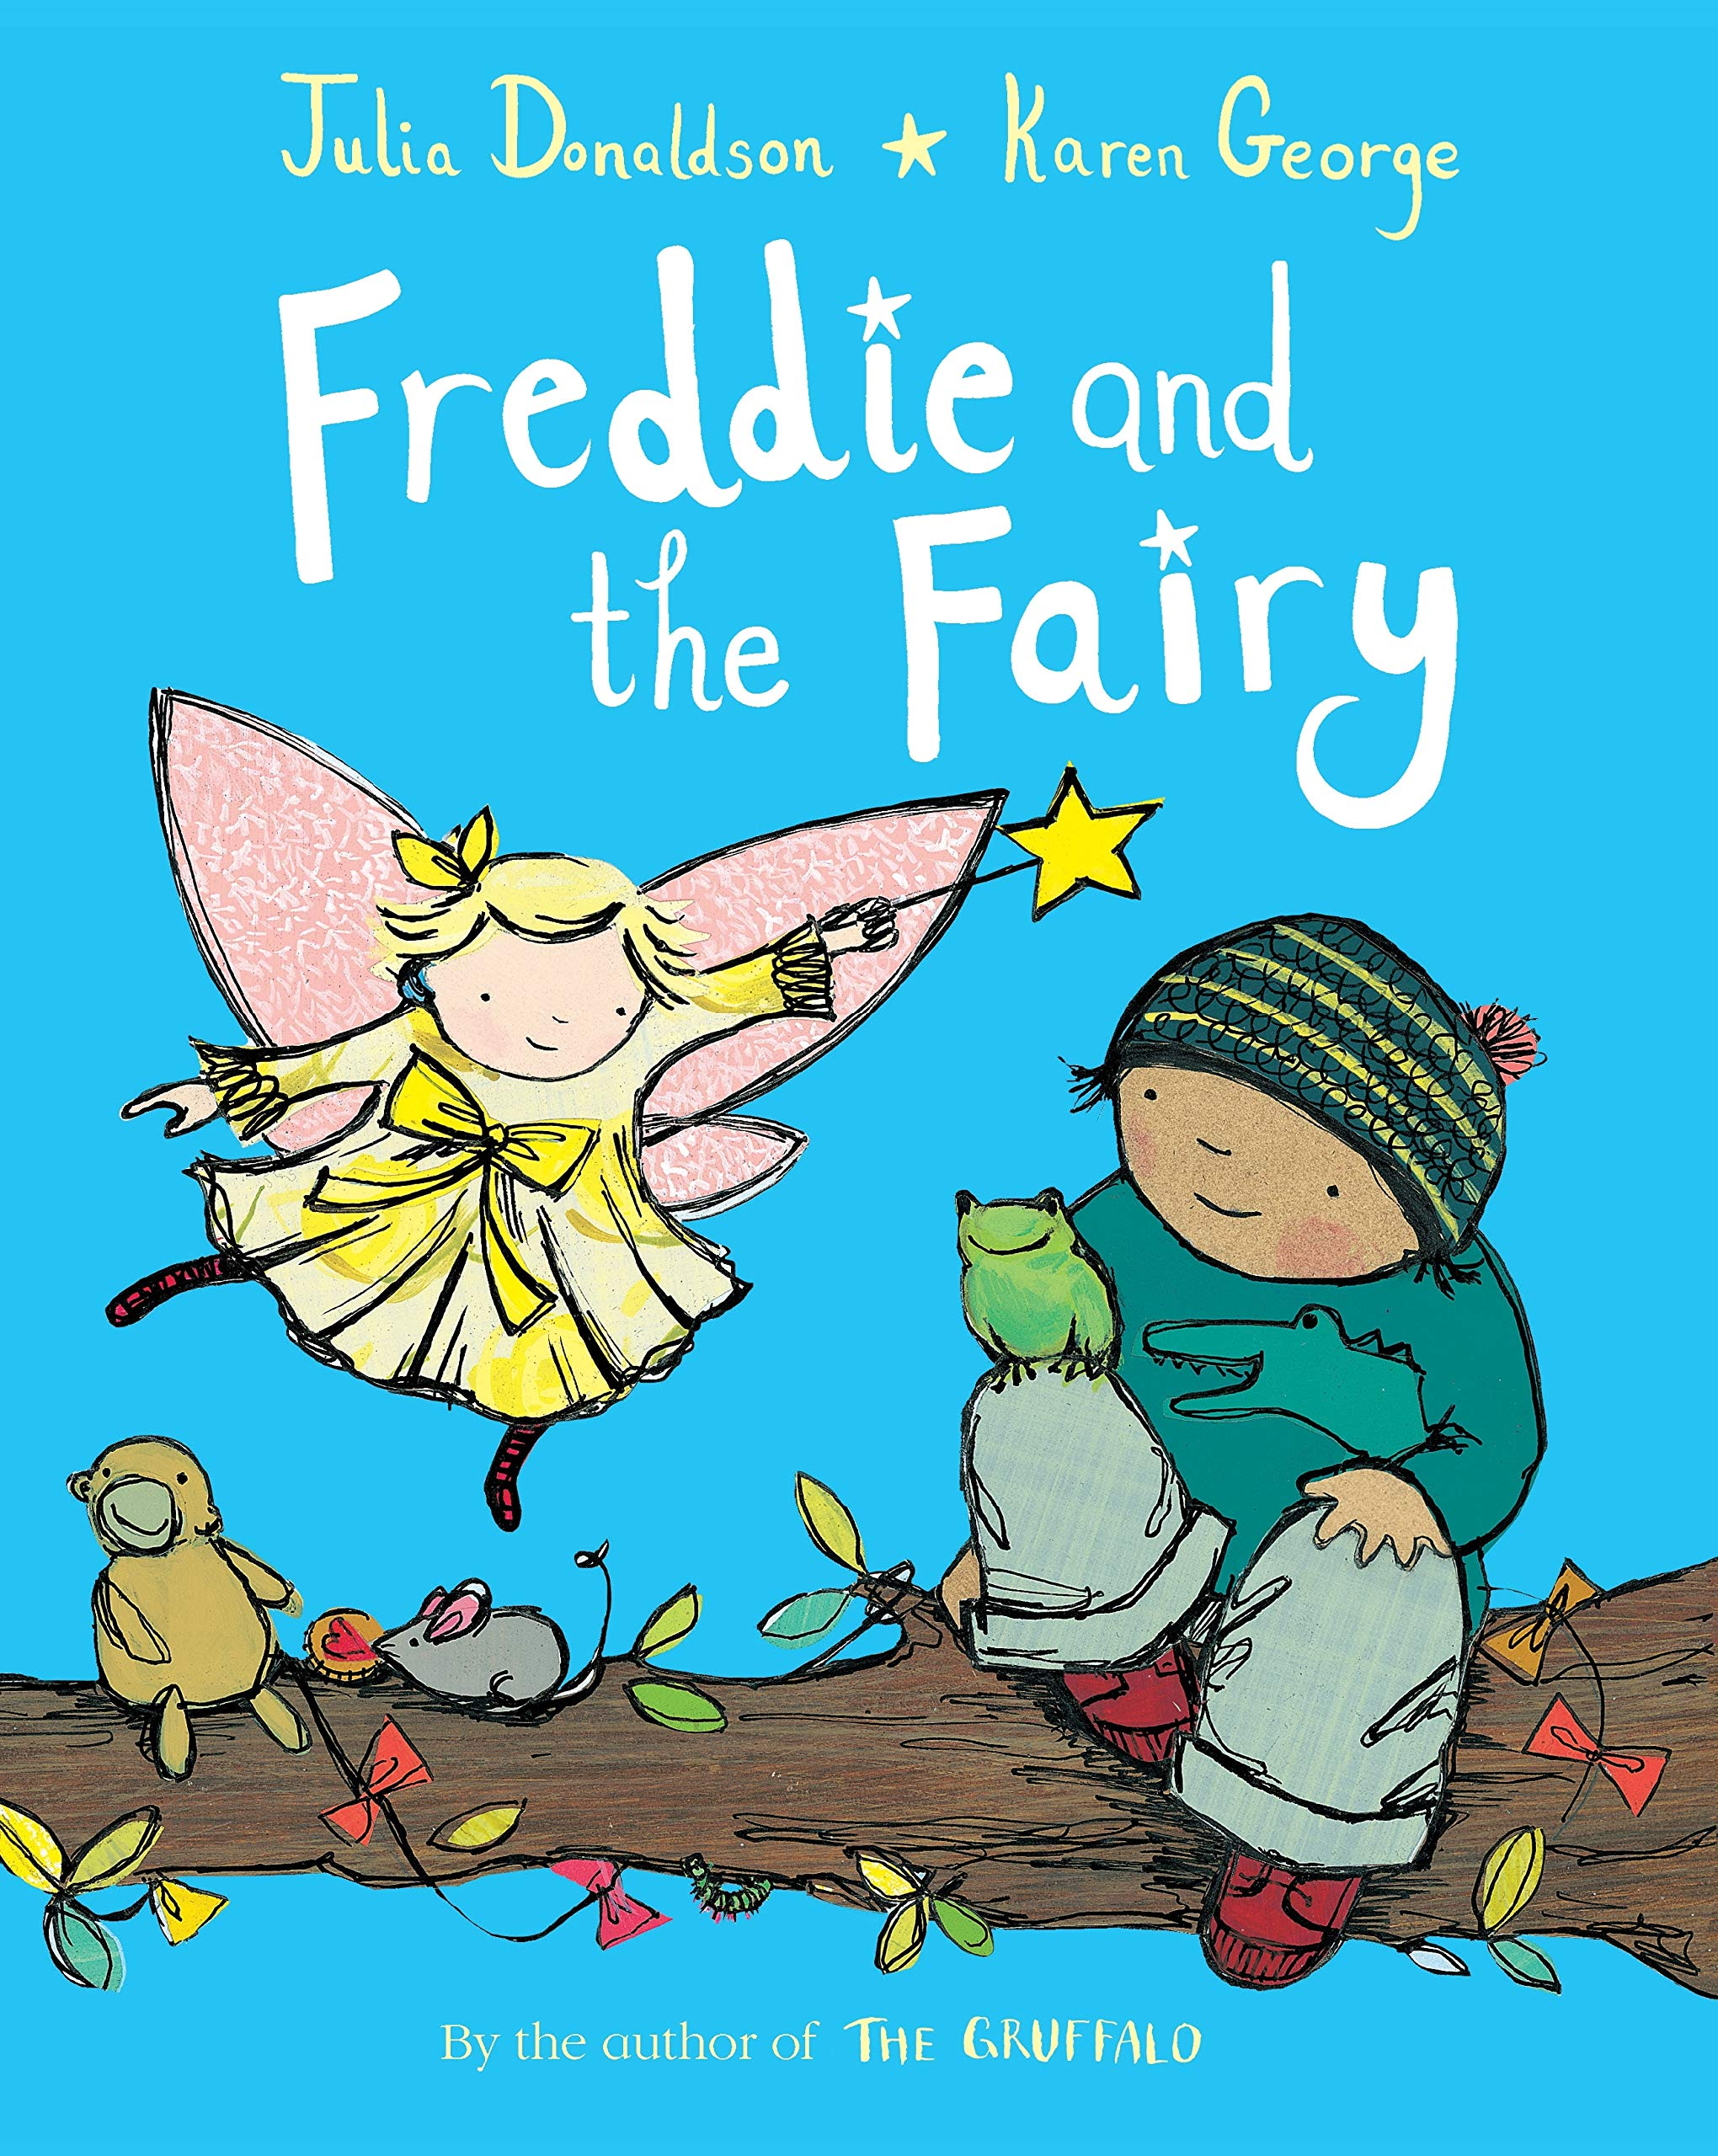 Freddie and the Fairy: Amazon.co.uk: Donaldson, Julia, George, Karen: Books